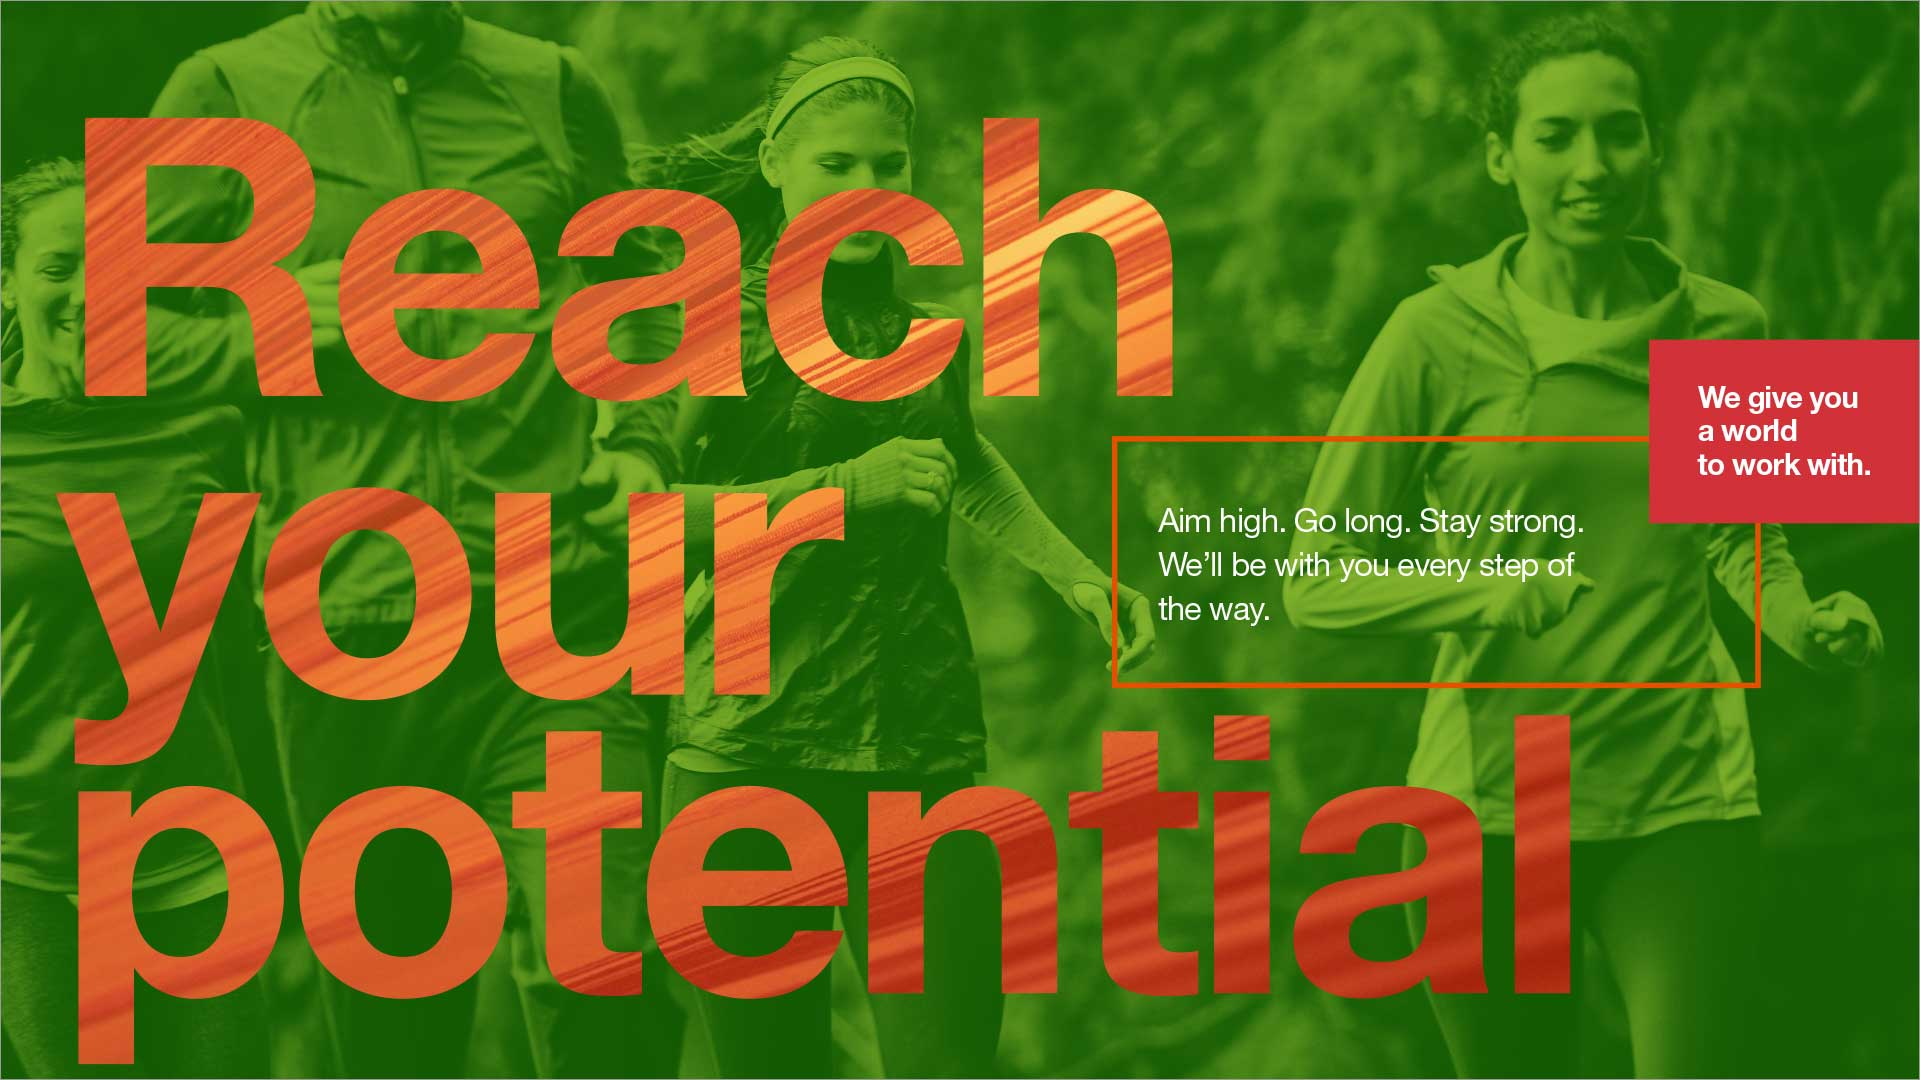 reach your potential design concept. Avery Dennison employer brand, group of runners, big message, bold color